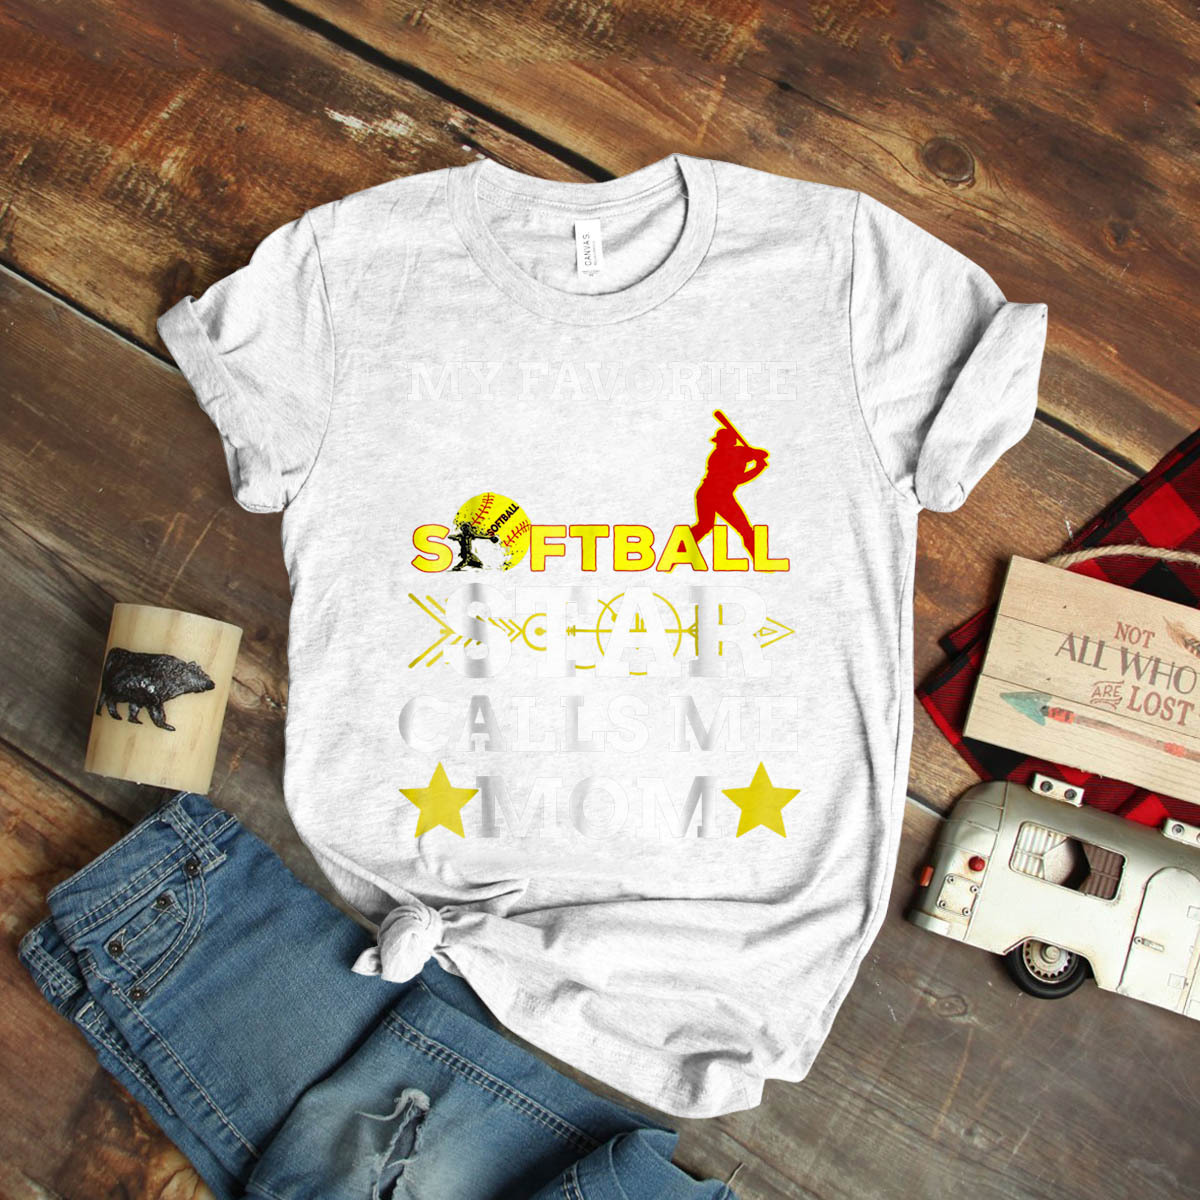 Softball Star Calls Me Mom Mother'S Day Ideas Birthday Gift Vintage Funny